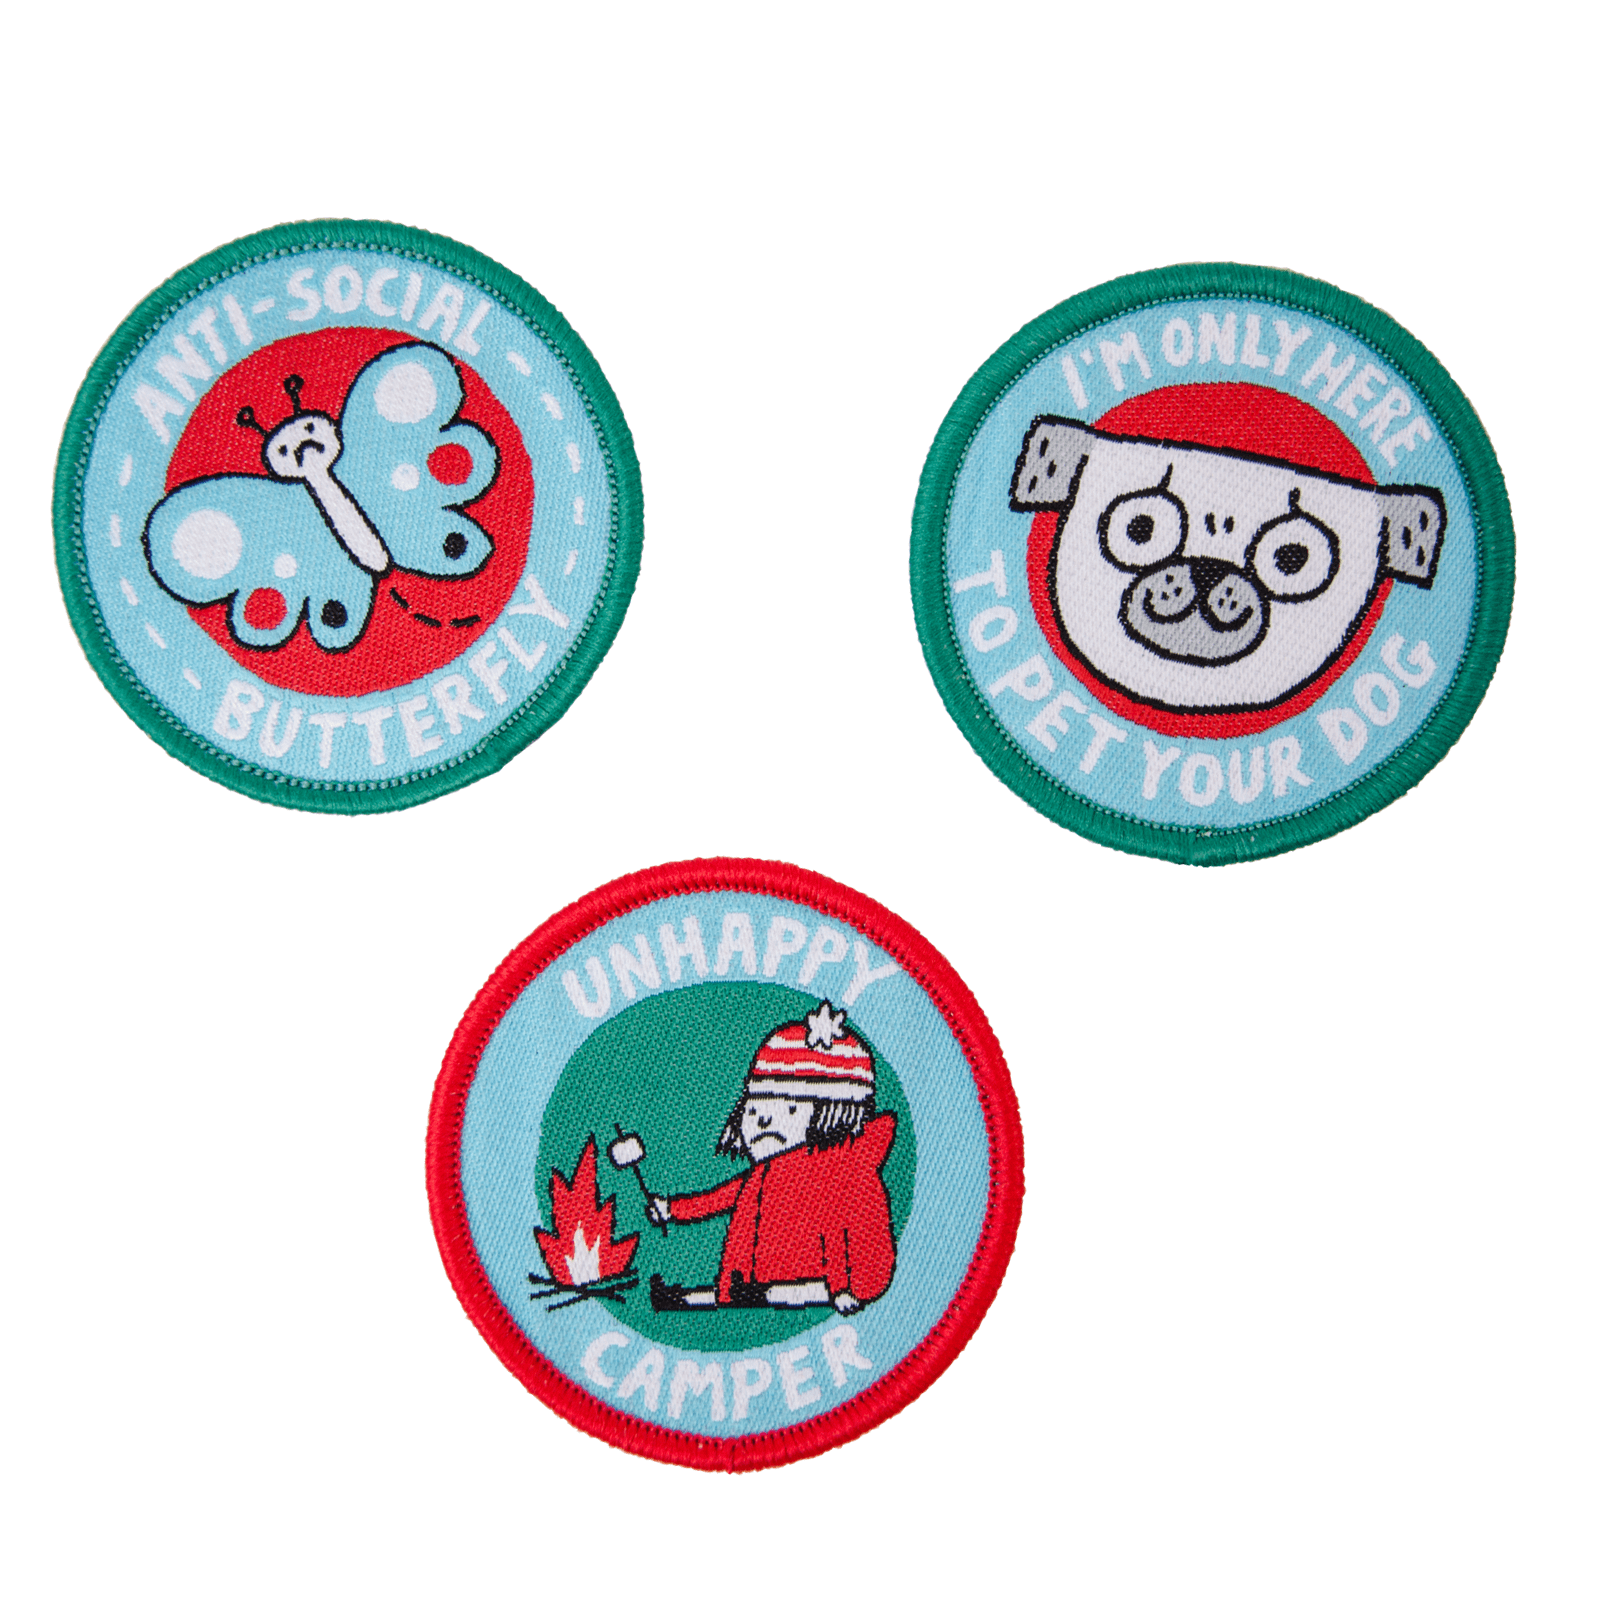 Woven Patch Set - Girl Guides